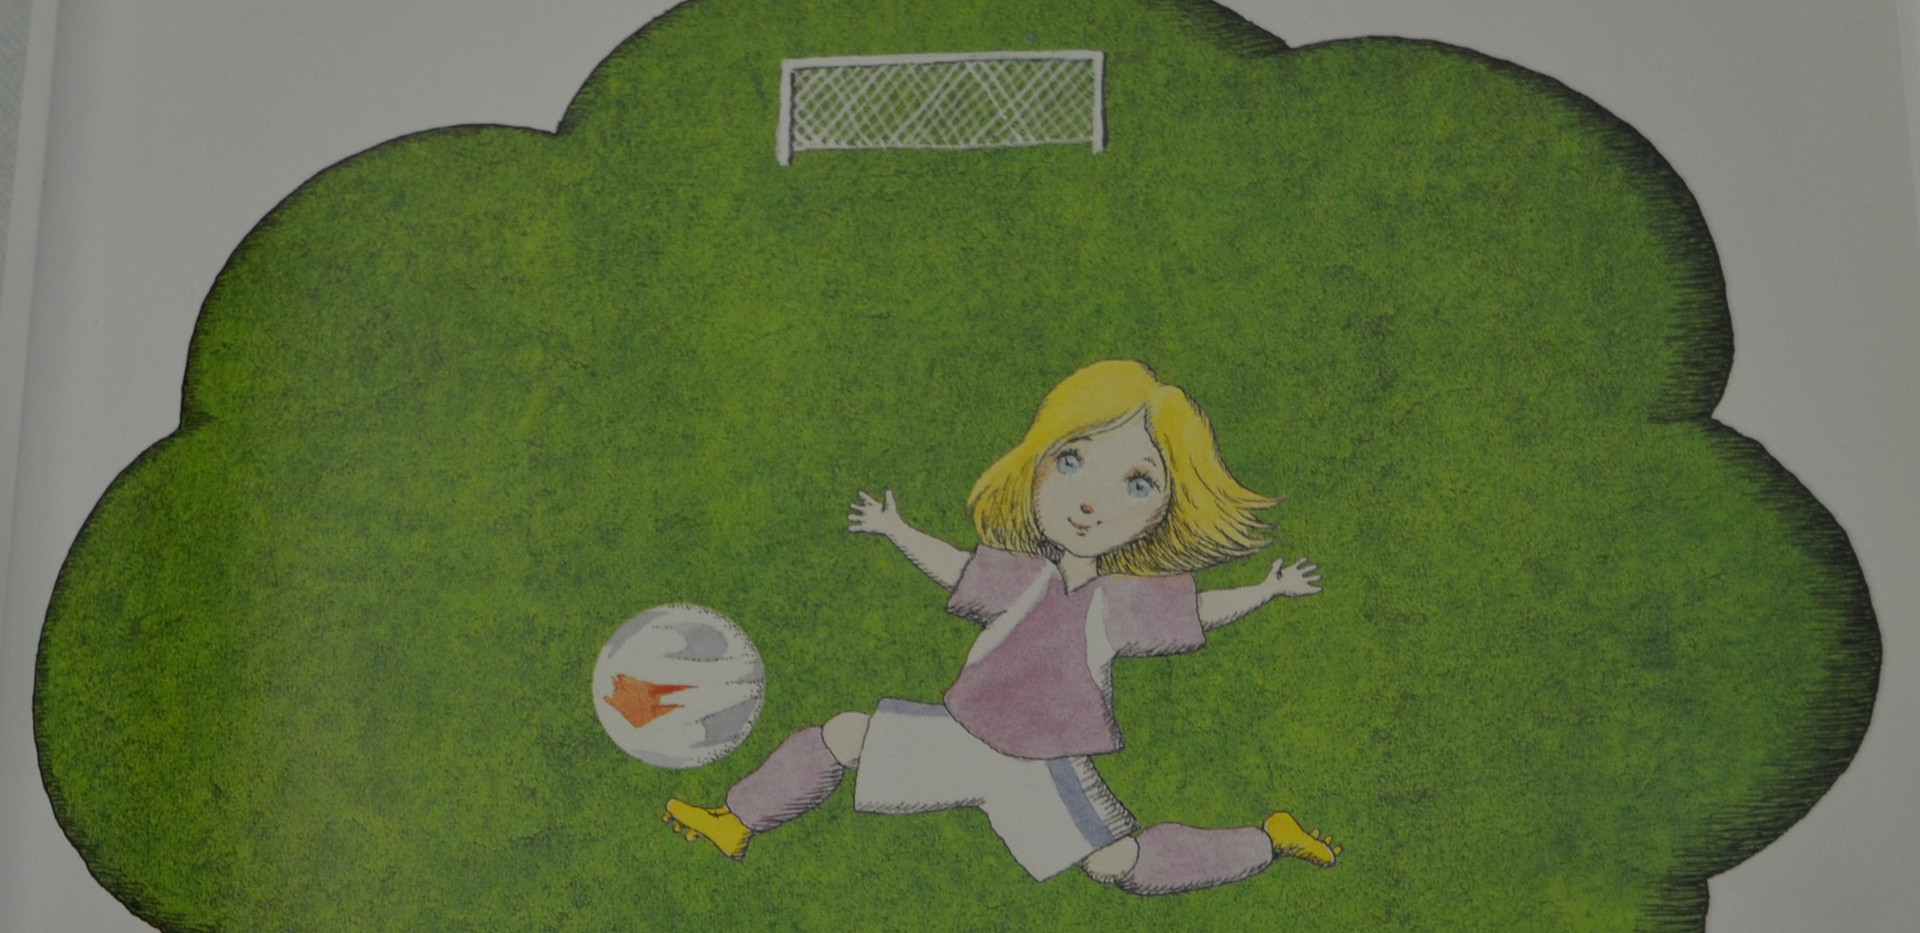 Sis, Peter. Madlenka, Soccer Star. Farrar, Straus and Giroux, 2010. p.2. Osborne Collection of Early Children's Books.